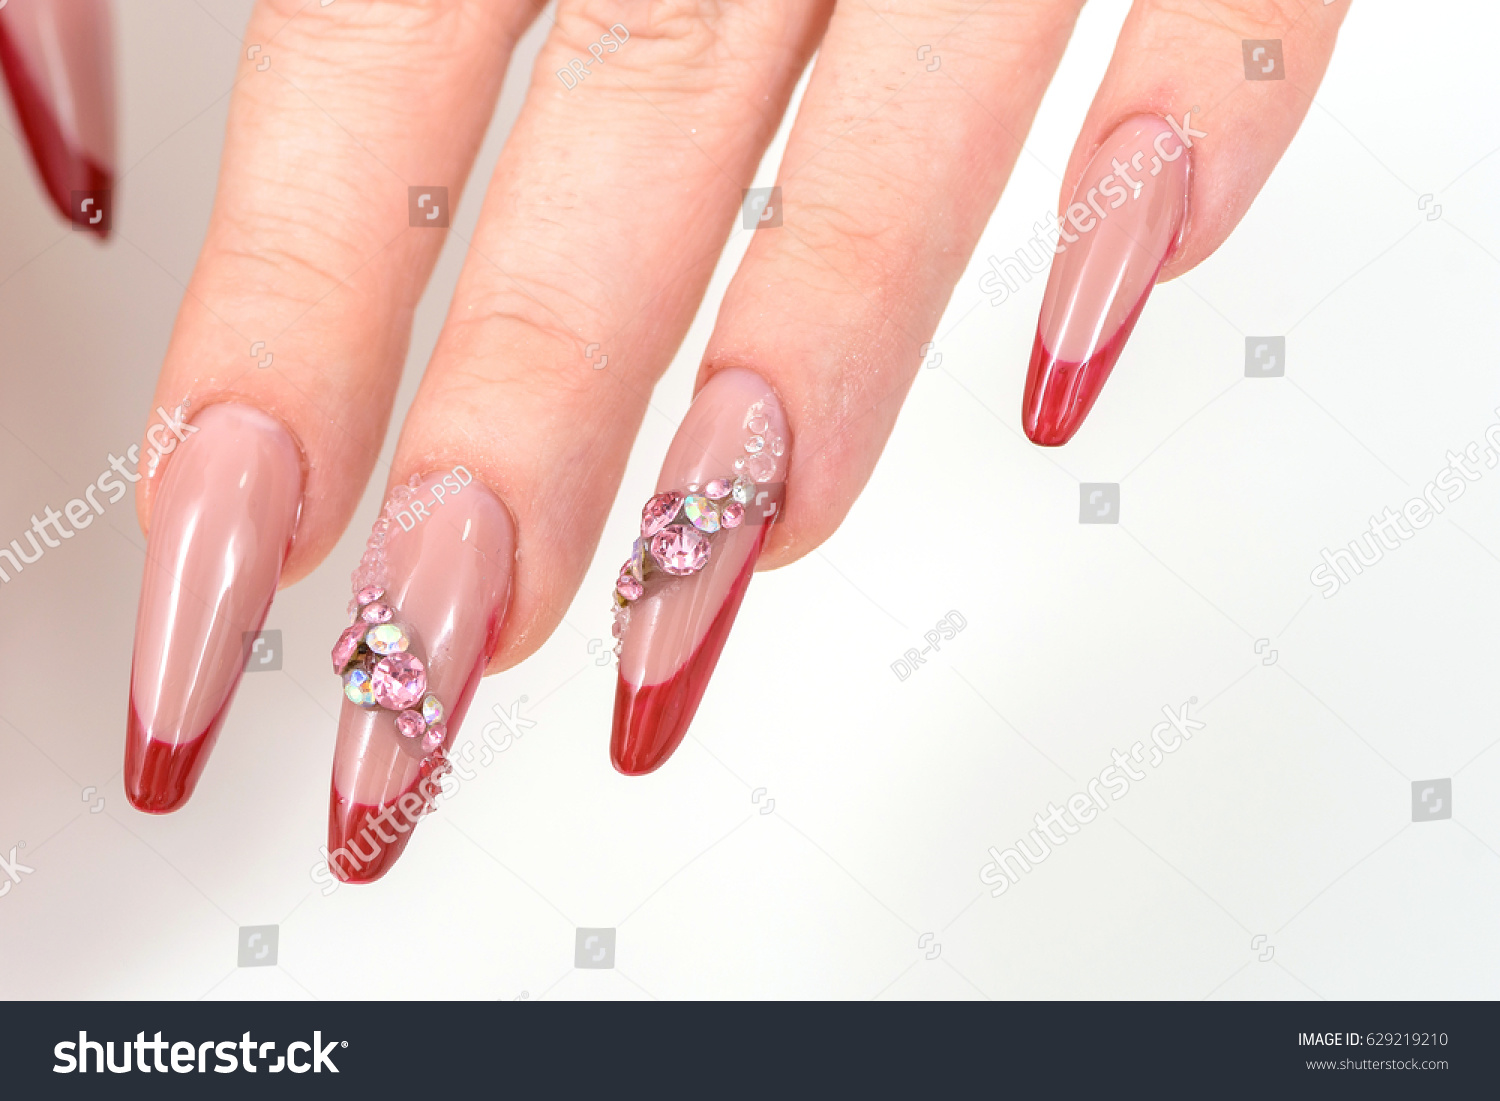 Construction Gel Nails Stock Photo (Royalty Free) 629219210 ...